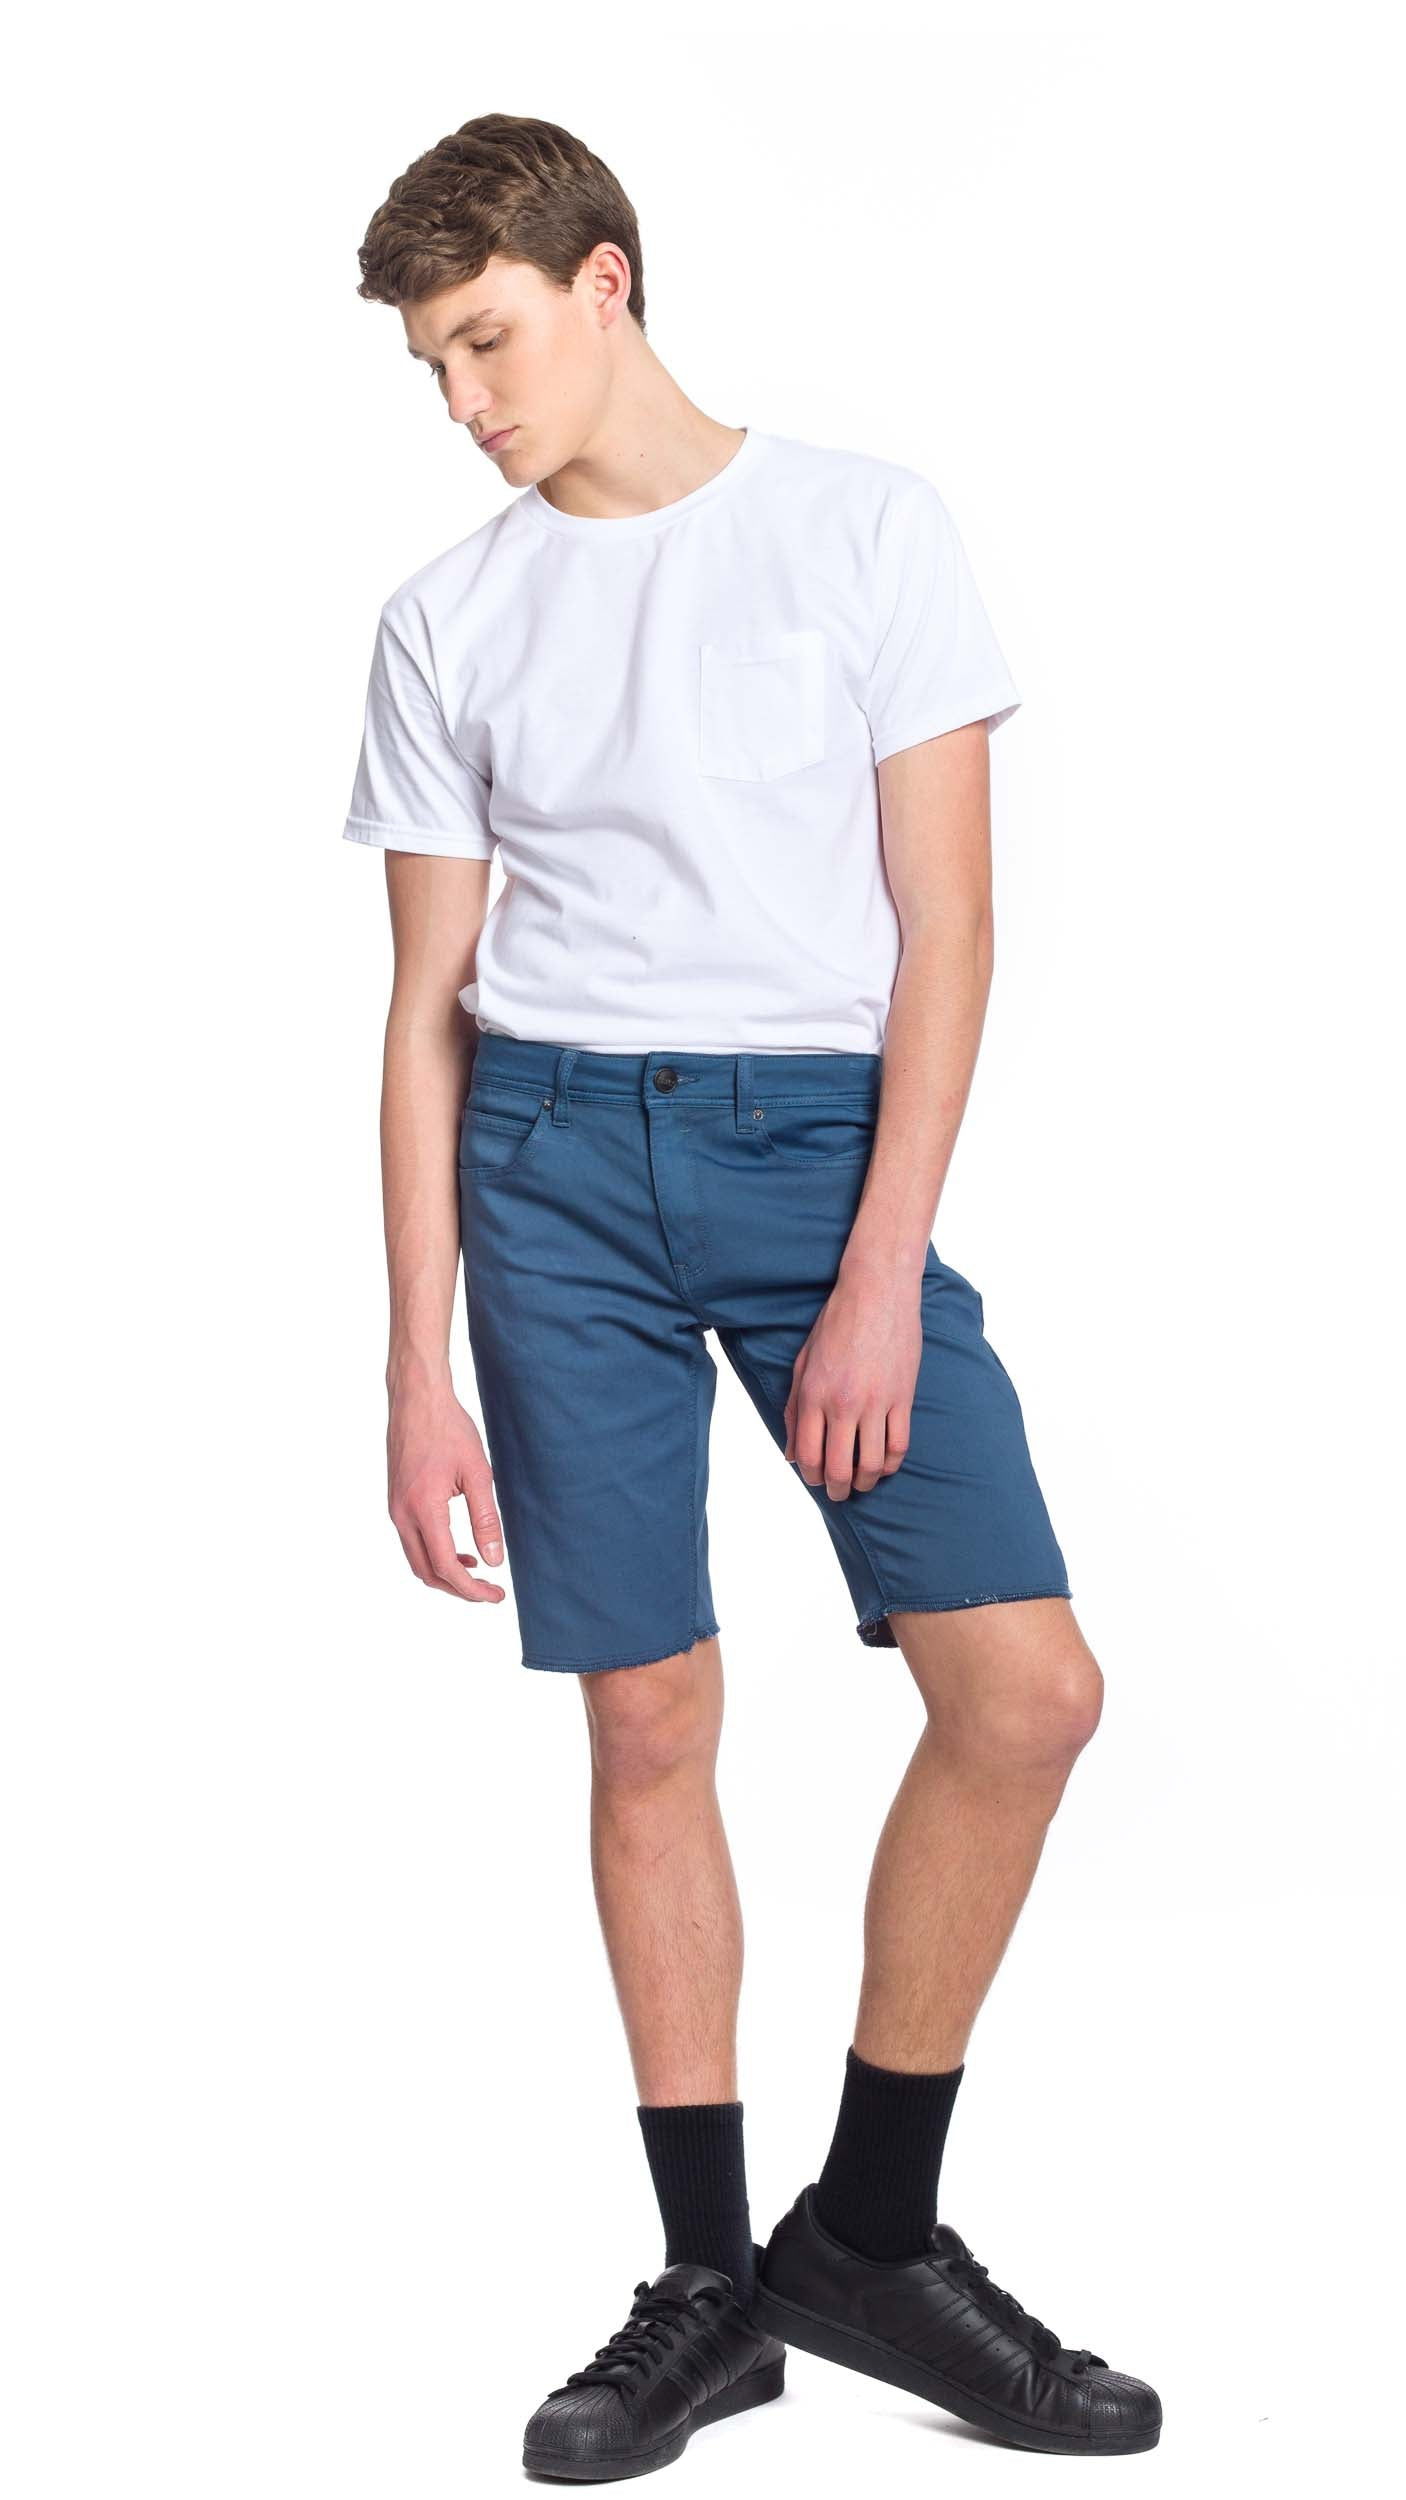 NOW Denim Short - Blue - Ezekiel Clothing